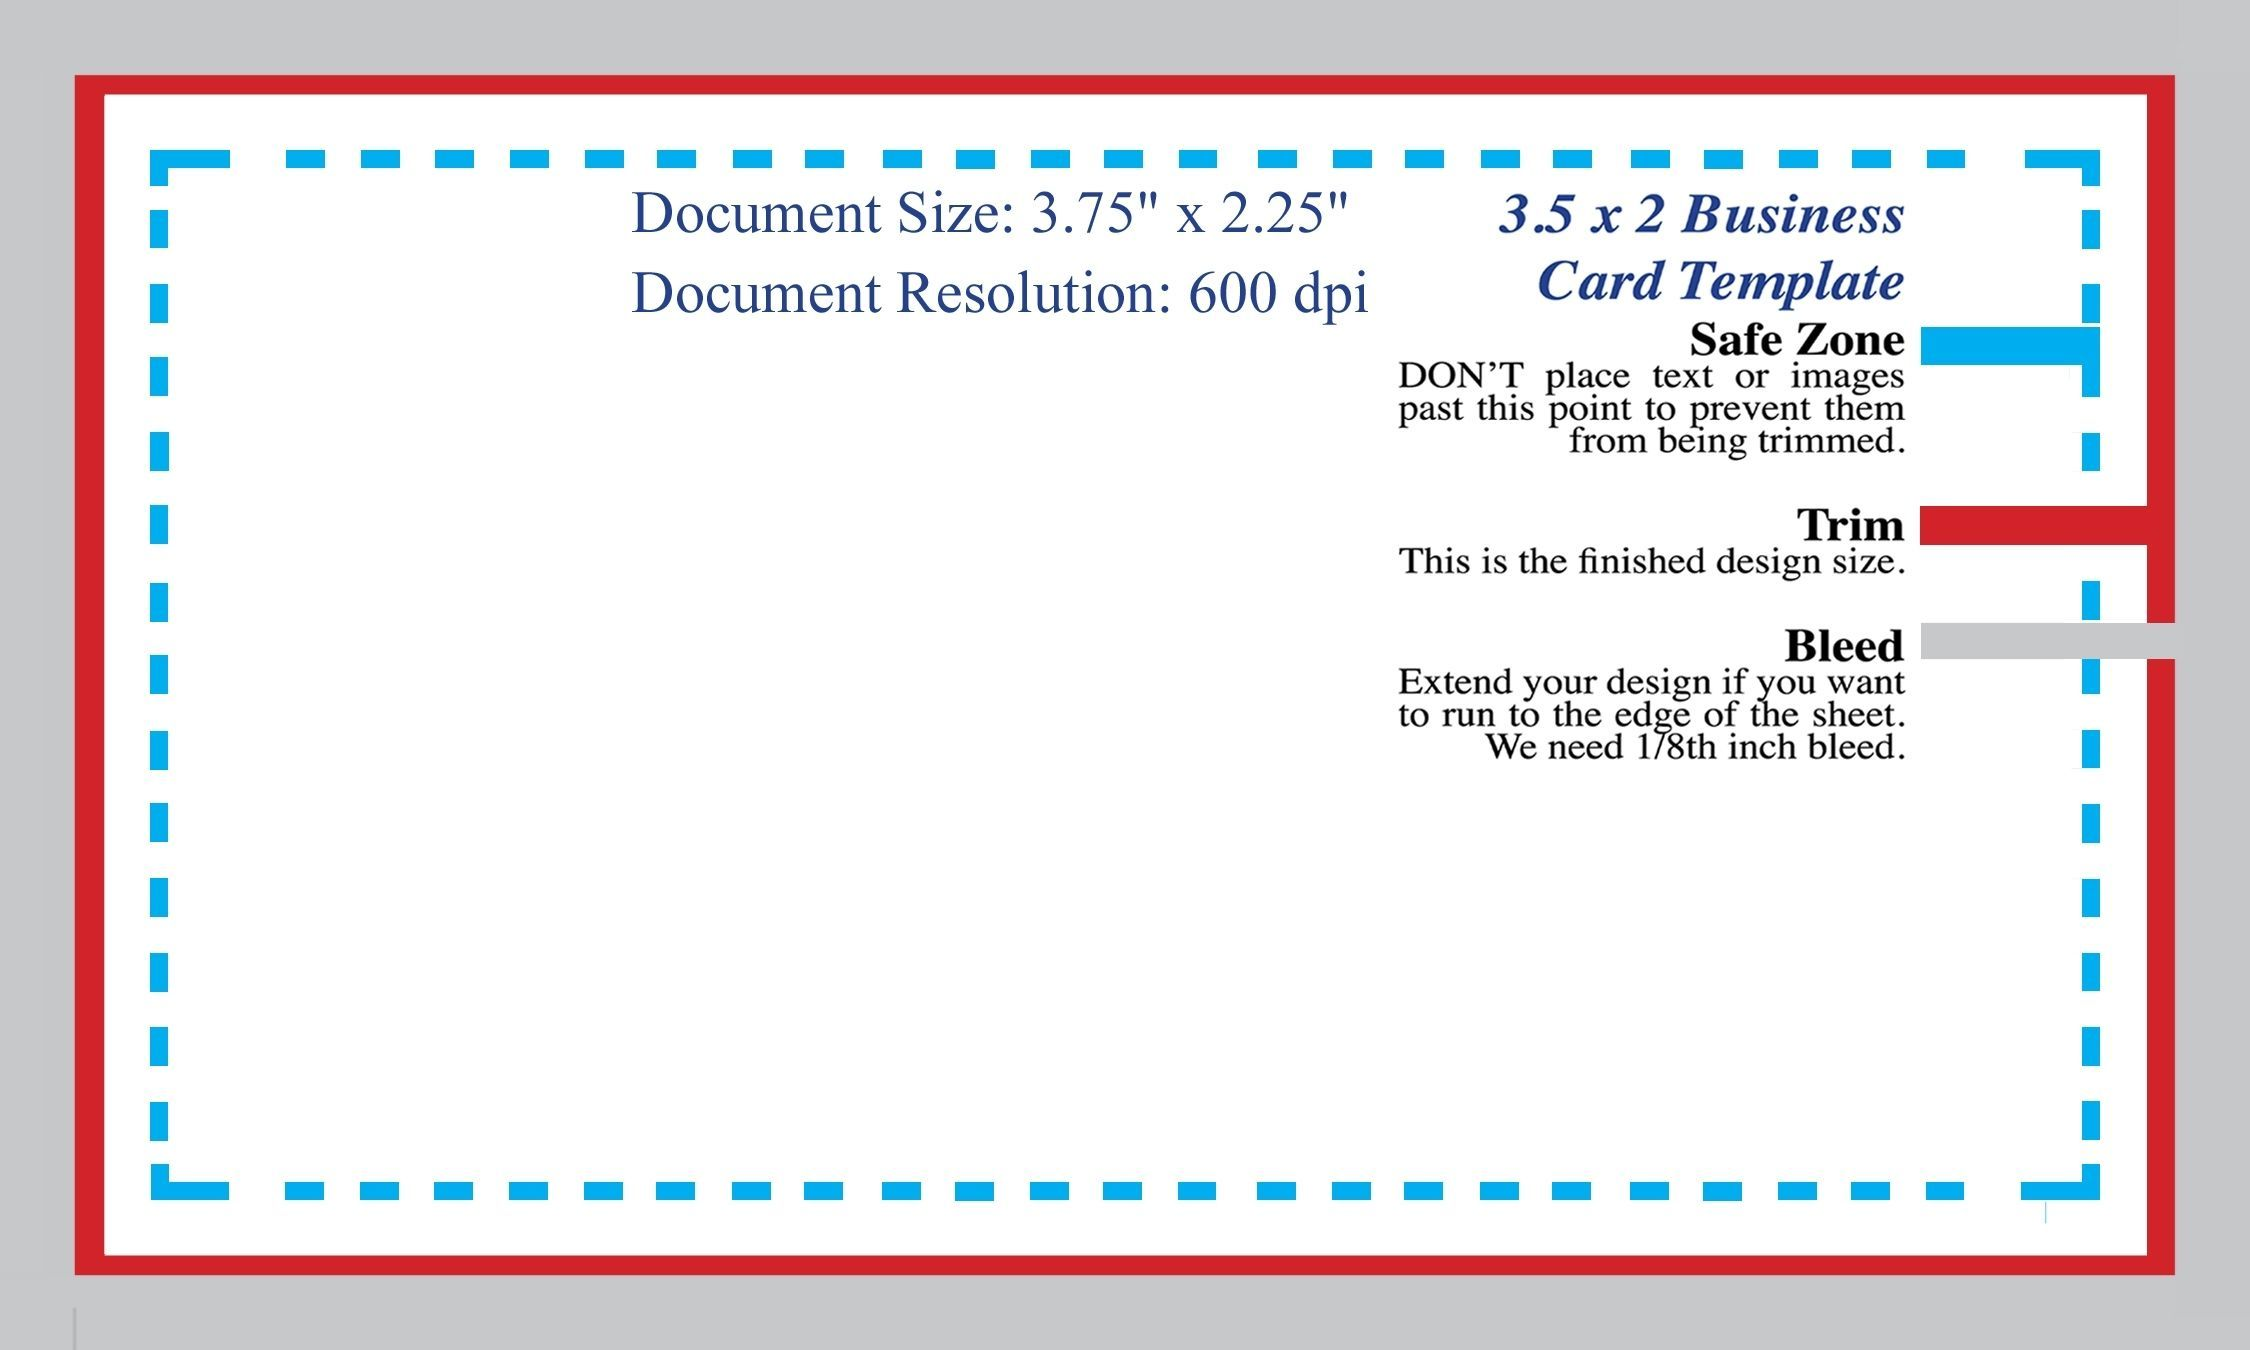 Standard Business Card Blank Template Photoshop Template Design